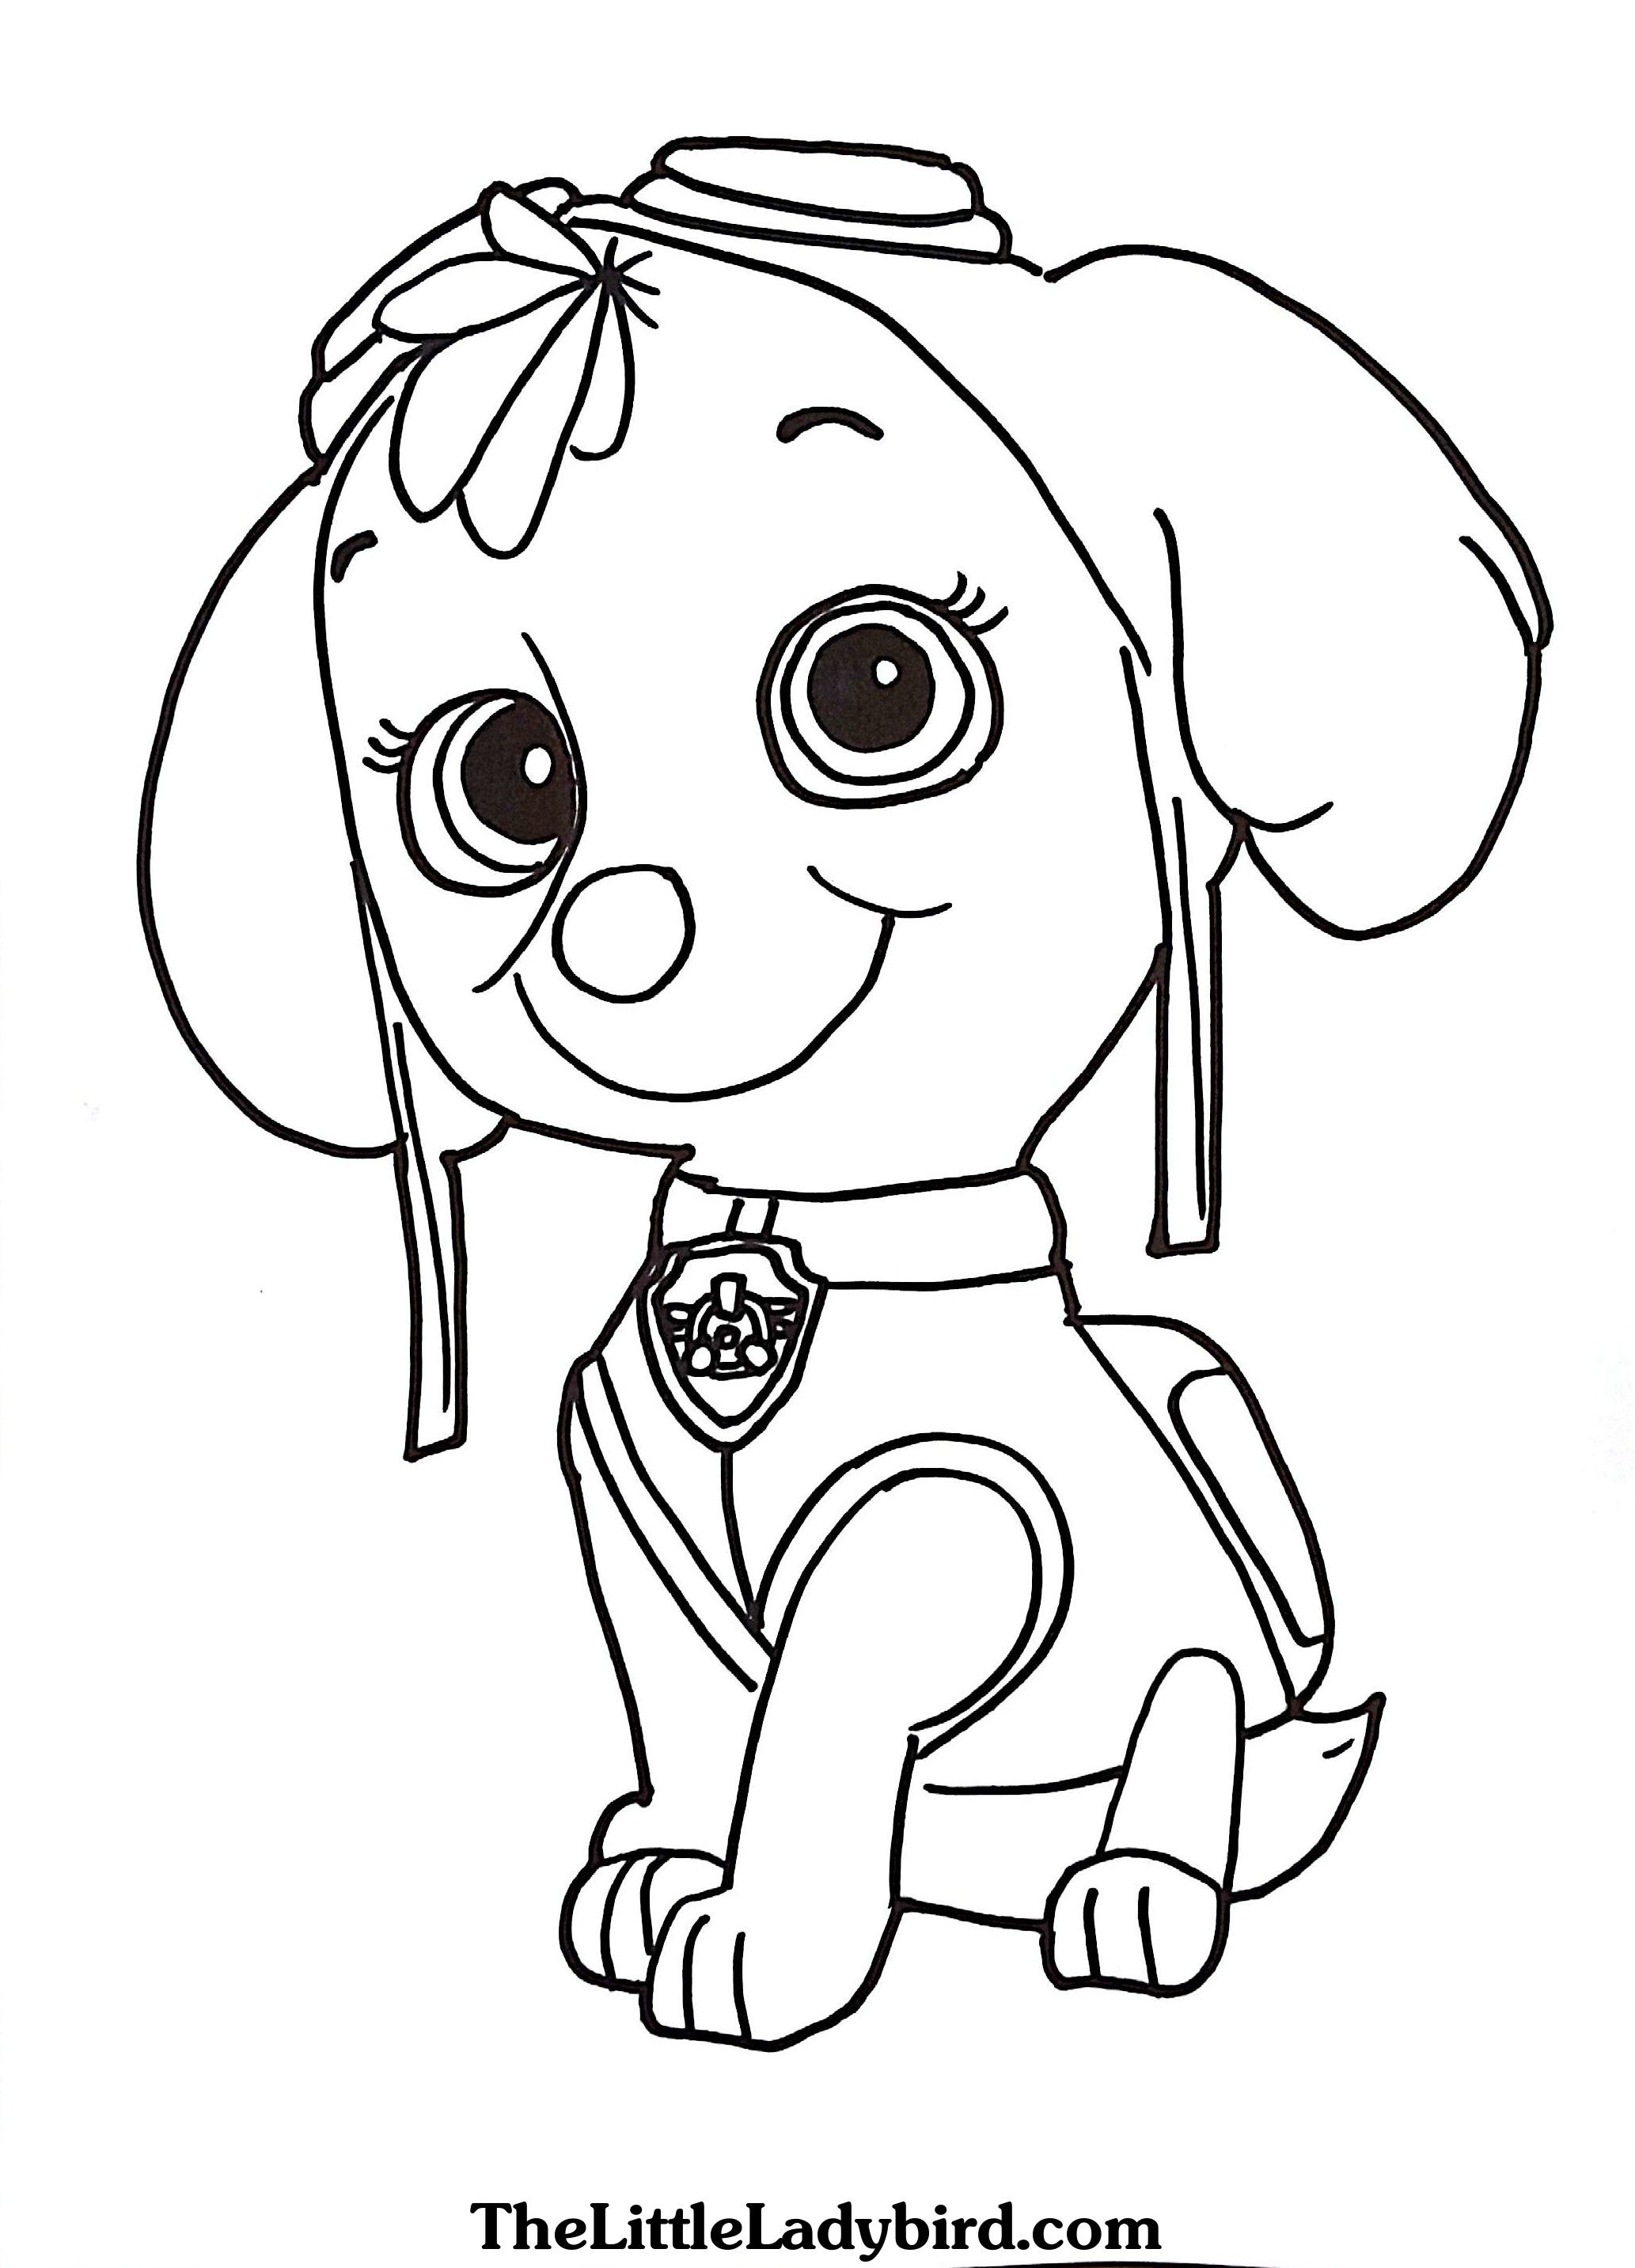 Free Skye From Paw Patrol Coloring Page Com And Pages Paw Patrol